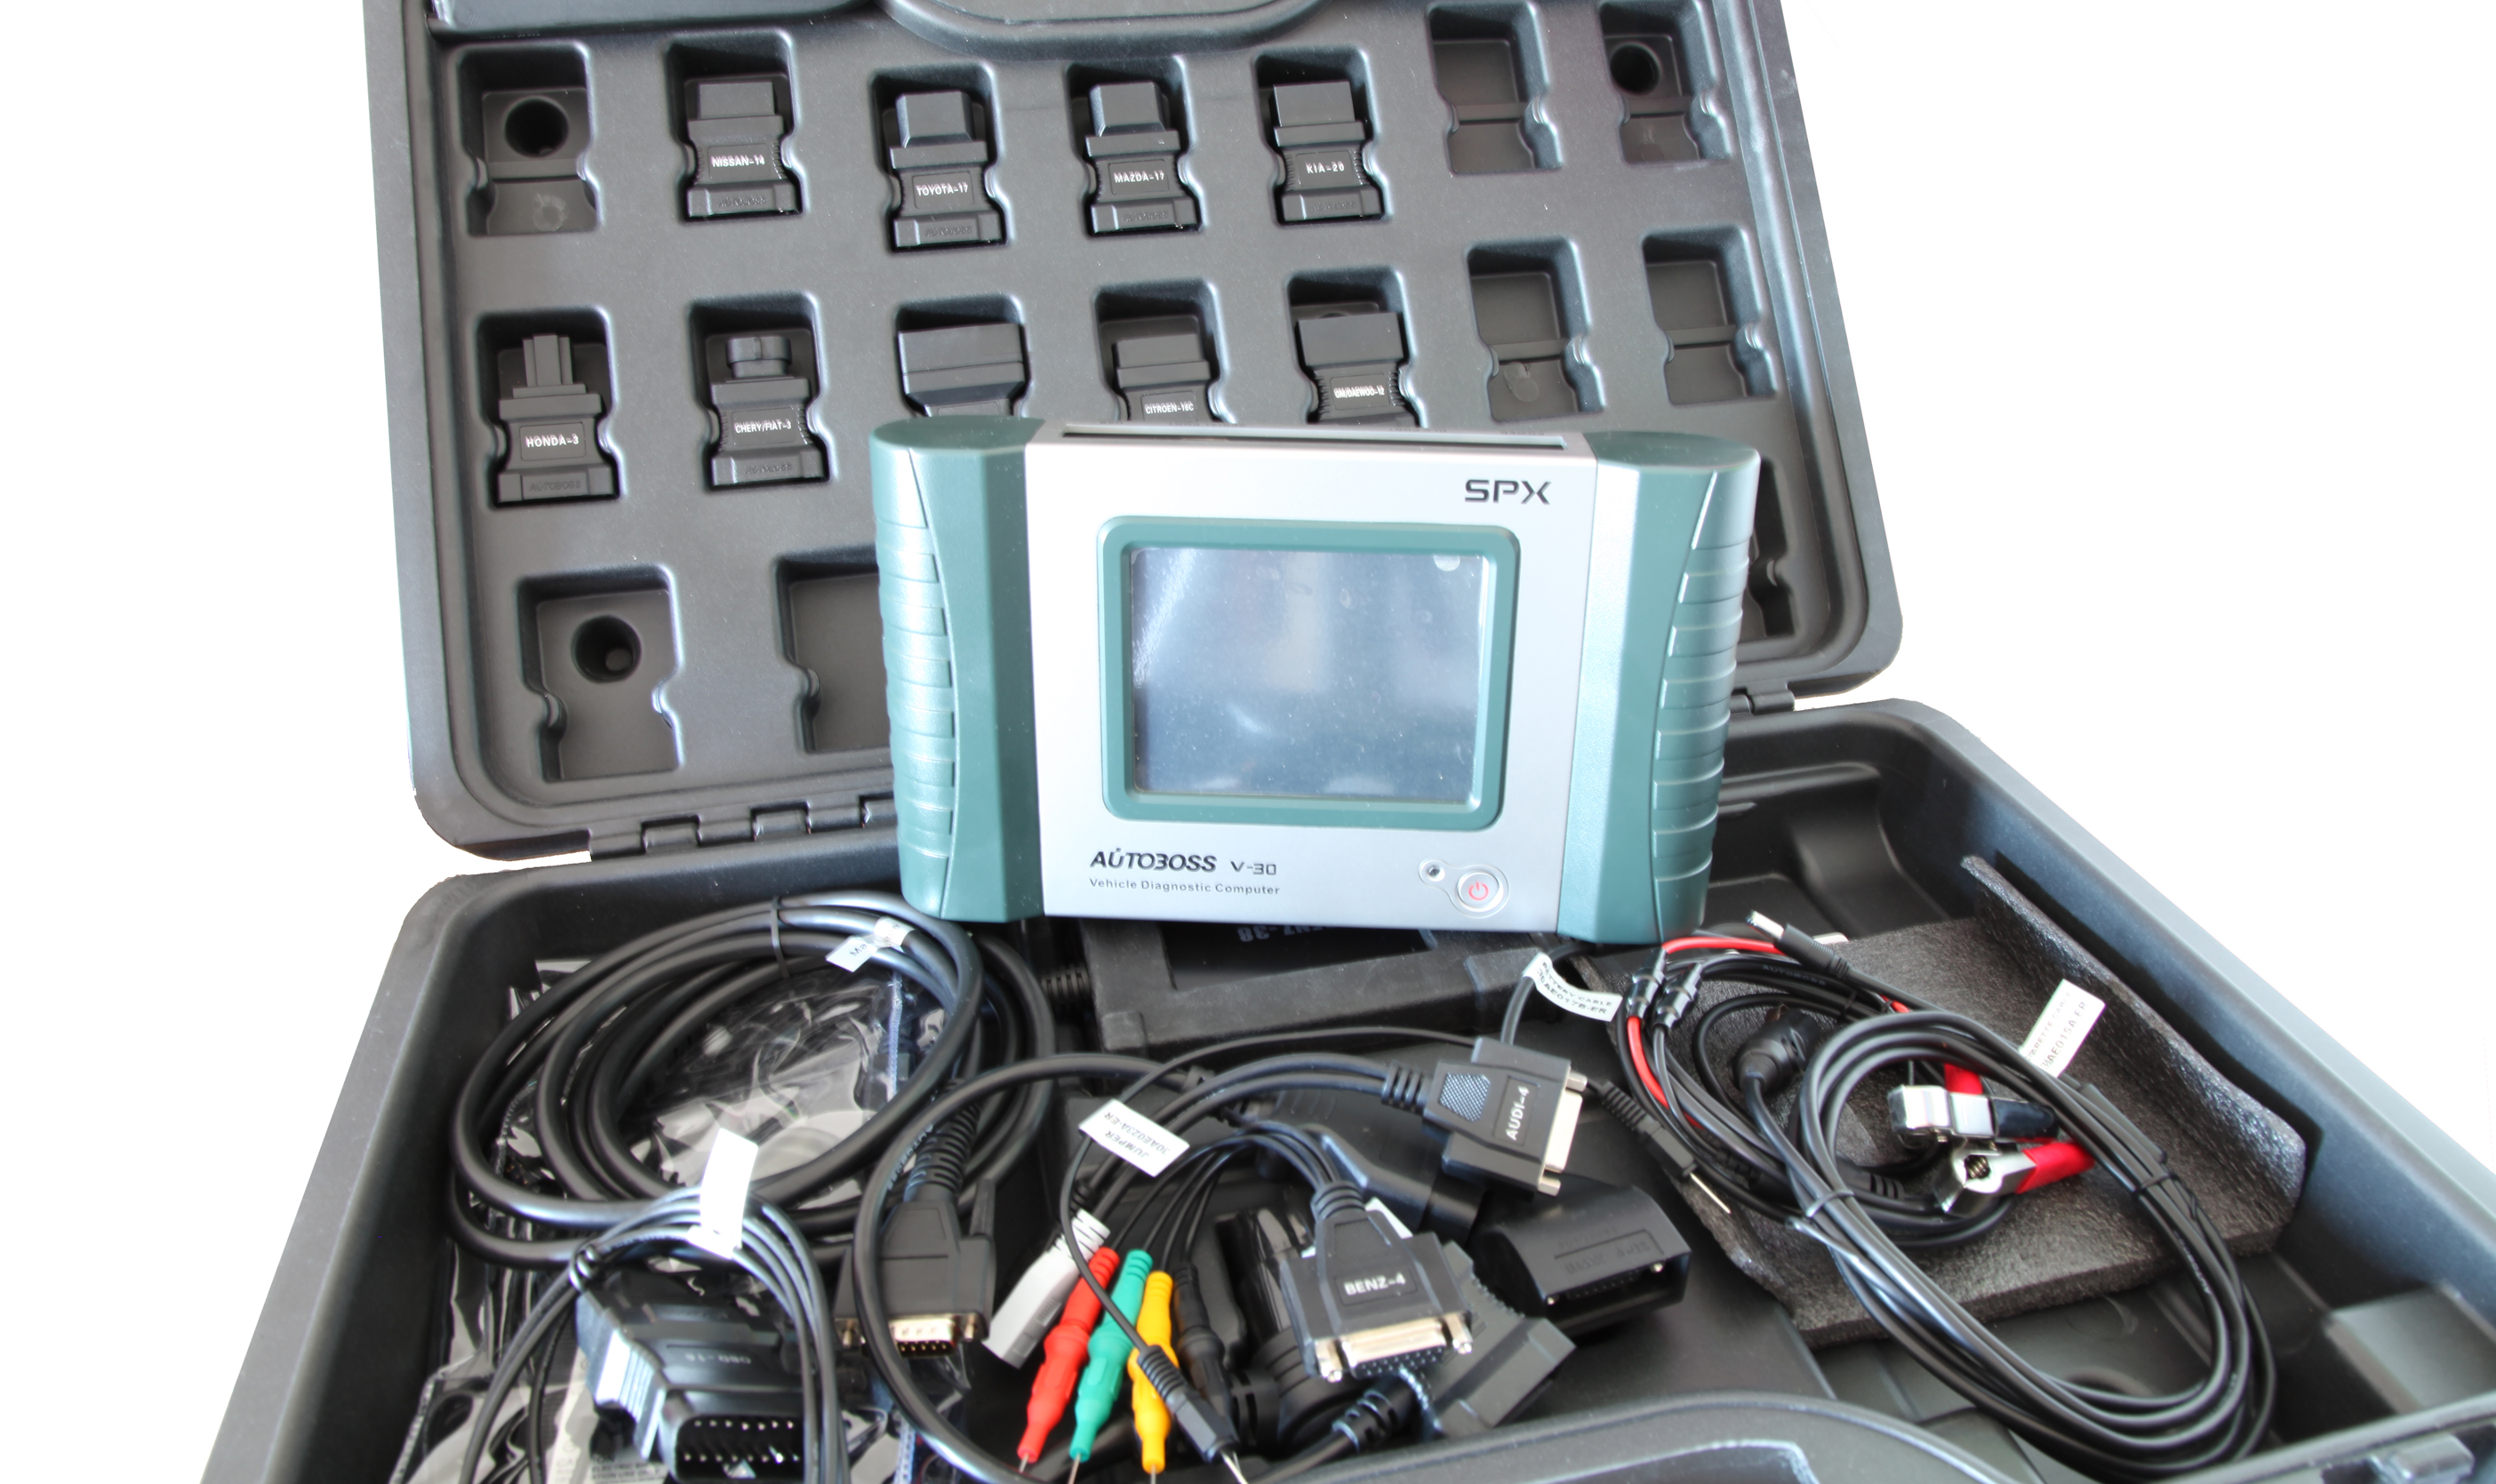 diagnostic system Diagnostic systems the right tool for the job snap-on business solutions designs and manufactures oem and aftermarket diagnostic tools, and is the leading provider for commercial vehicle diagnostics in the united states.